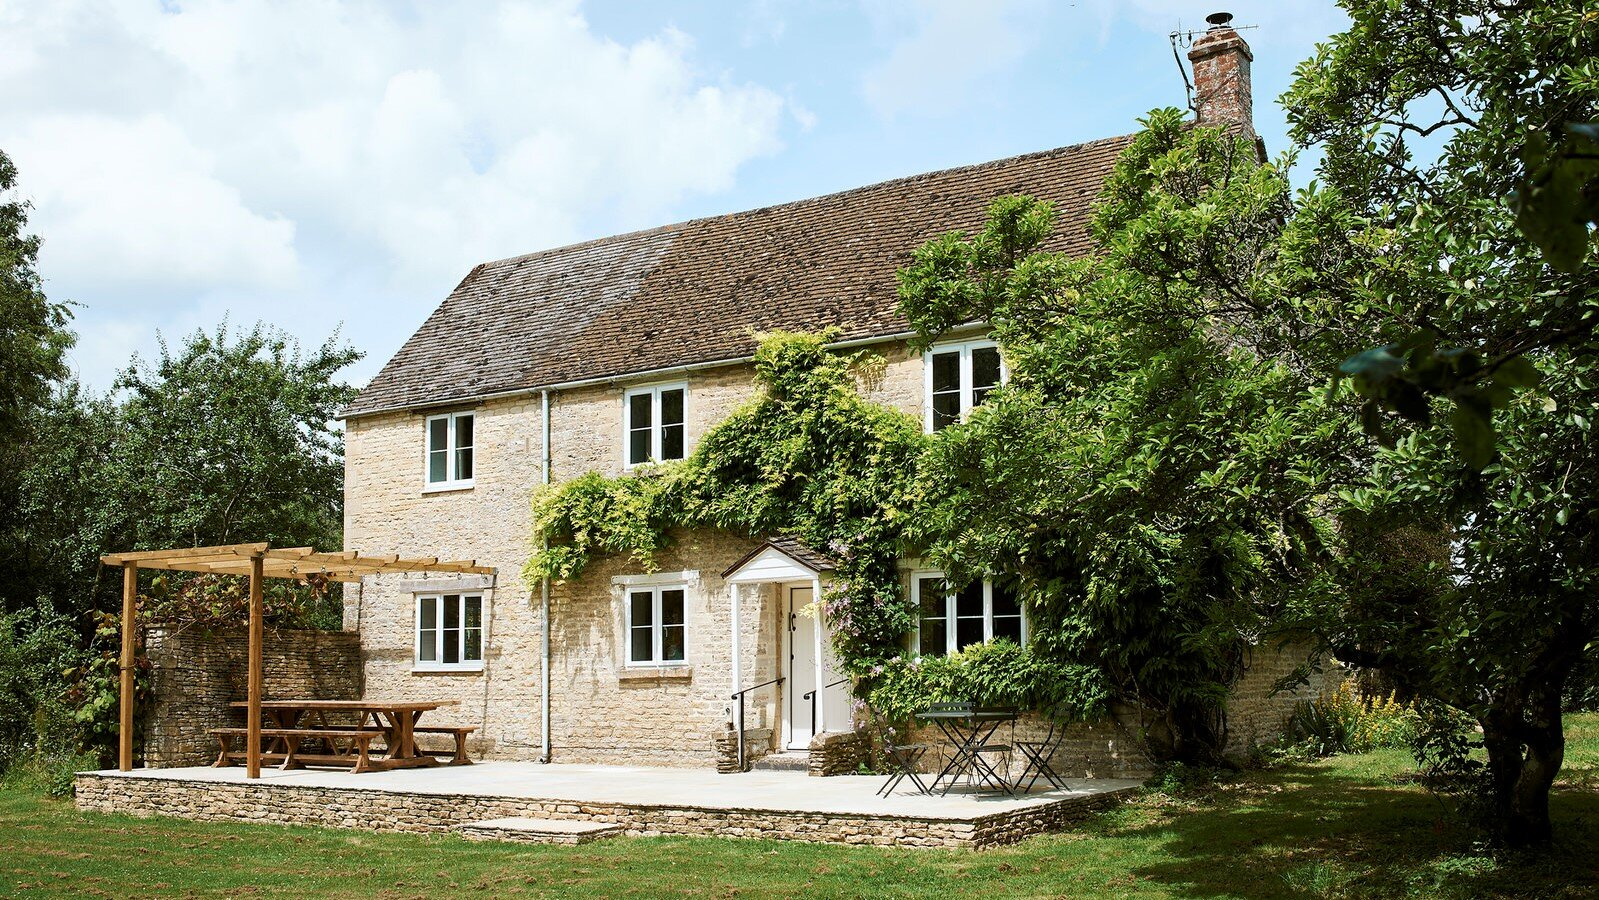 Montreal House - GLOUCESTERSHIRE, GL7 5ELLocated nine miles from Stone Barn and one mile from Cripps Barn, Montreal House can accommodate 10 people in 5 bedrooms